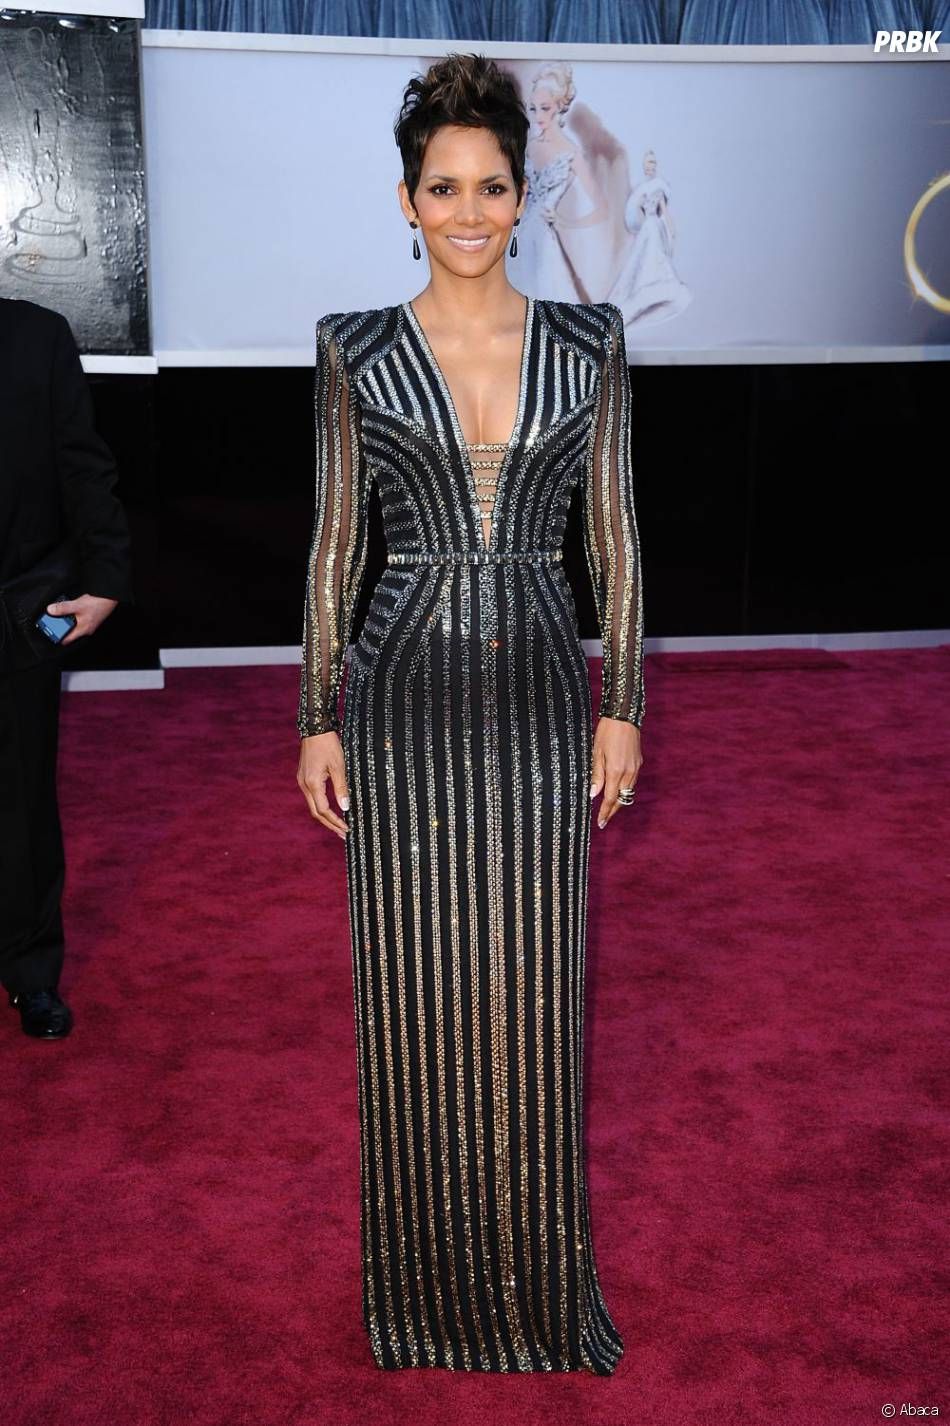 Halle Berry aux Oscars 2013 : Super silhouette, make-up sexy, mais pourquoi avoir choisi cette robe too much ?